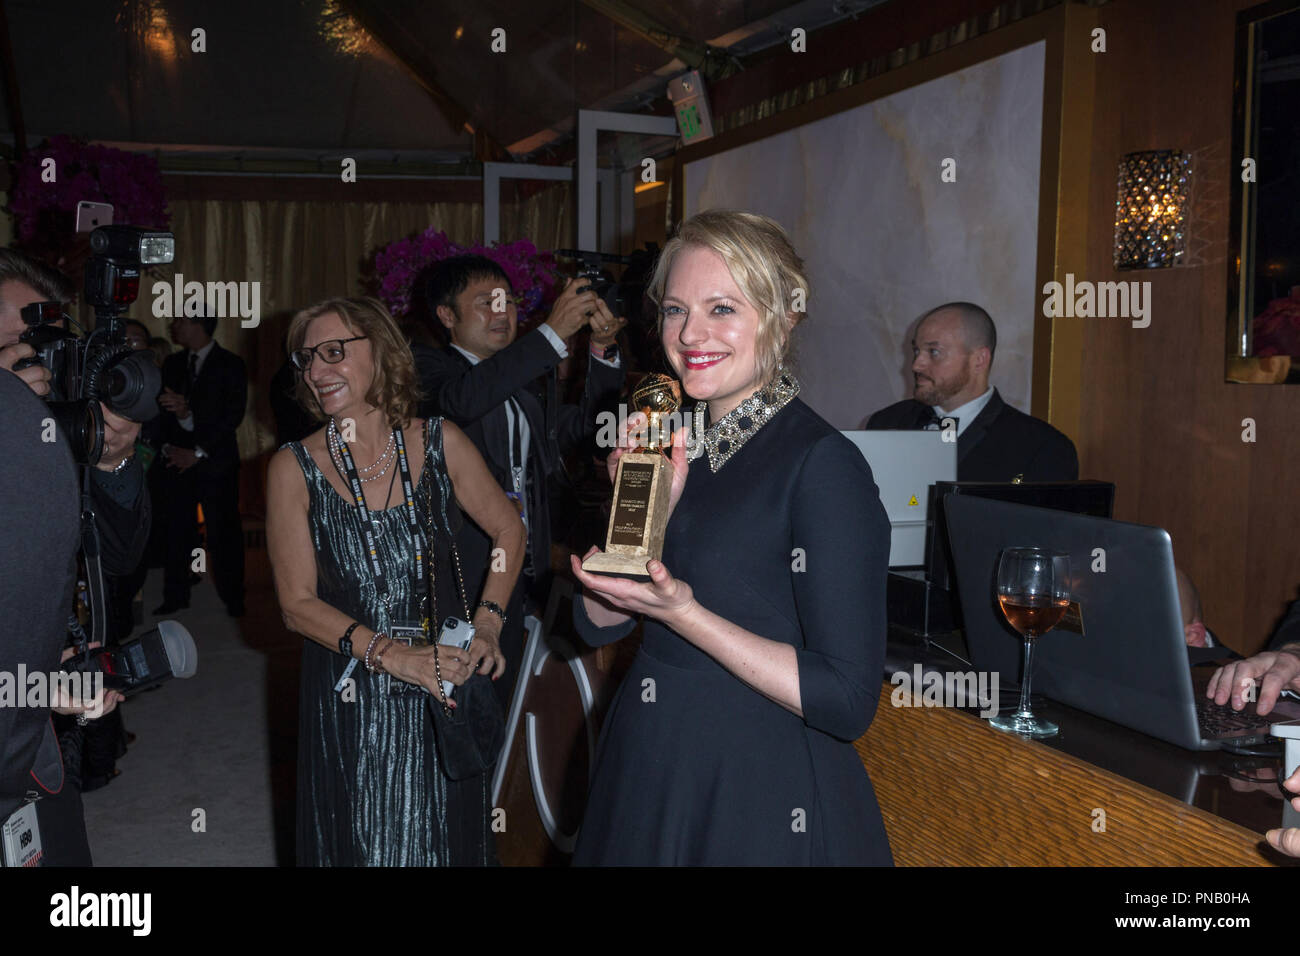 "After winning the category of BEST PERFORMANCE BY AN ACTRESS IN A TELEVISION SERIES – DRAMA for her role in ""The Handmaid's Tale,"" actress Elisabeth Moss poses backstage with her Golden Globe Award at the 75th Annual Golden Globe Awards at the Beverly Hilton in Beverly Hills, CA on Sunday, January 7, 2018. Stock Photo"